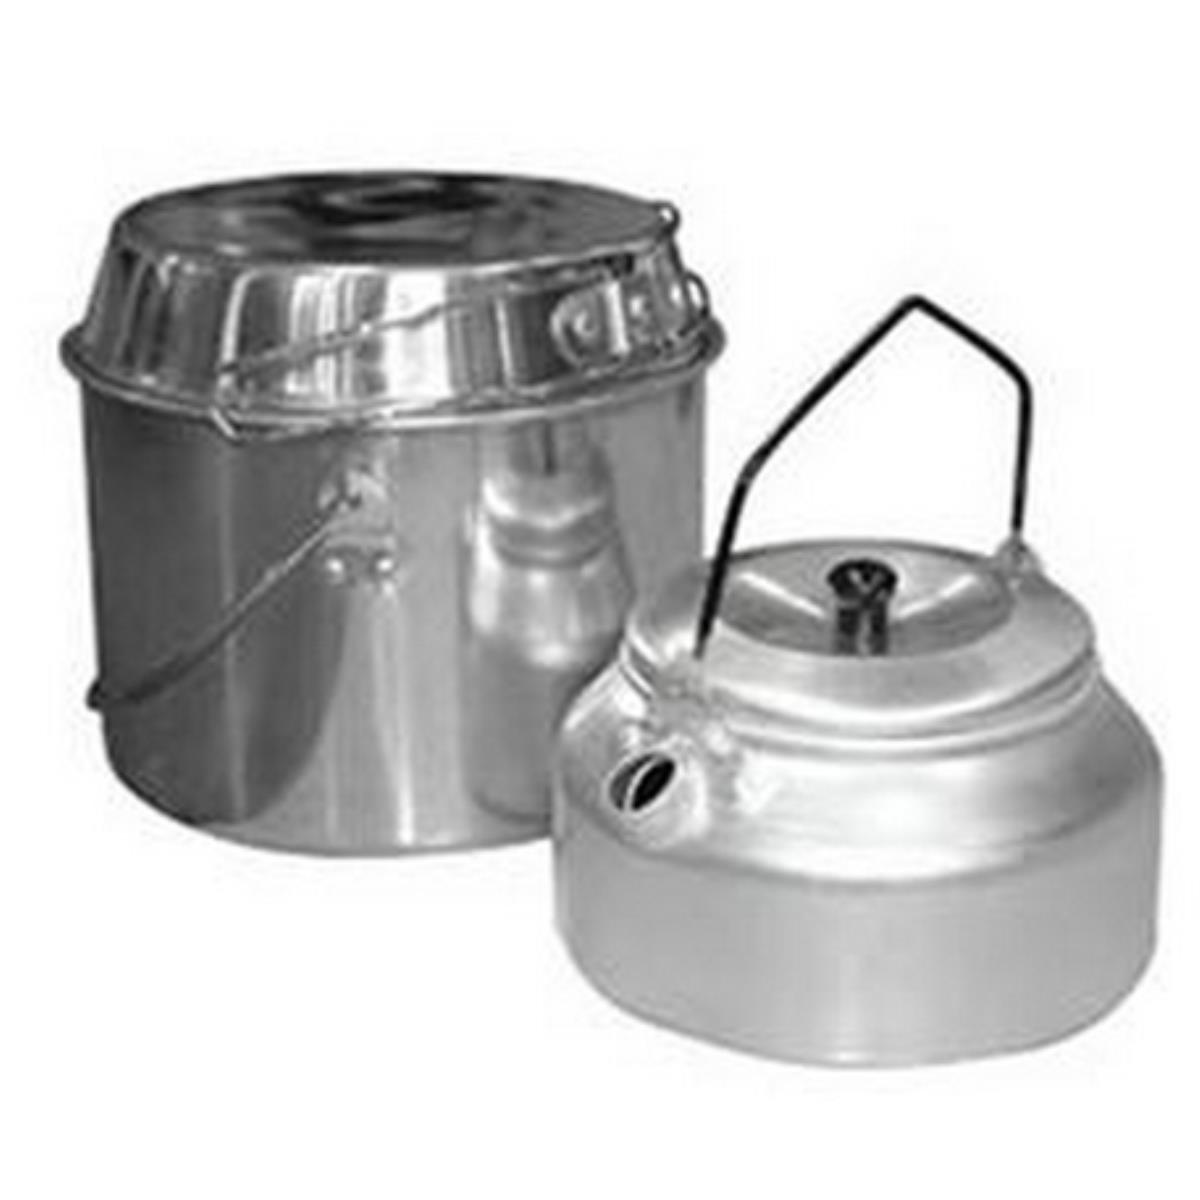 Set Camping Bucket 3L Kettle 1L Camp-s2 (991002/991009)